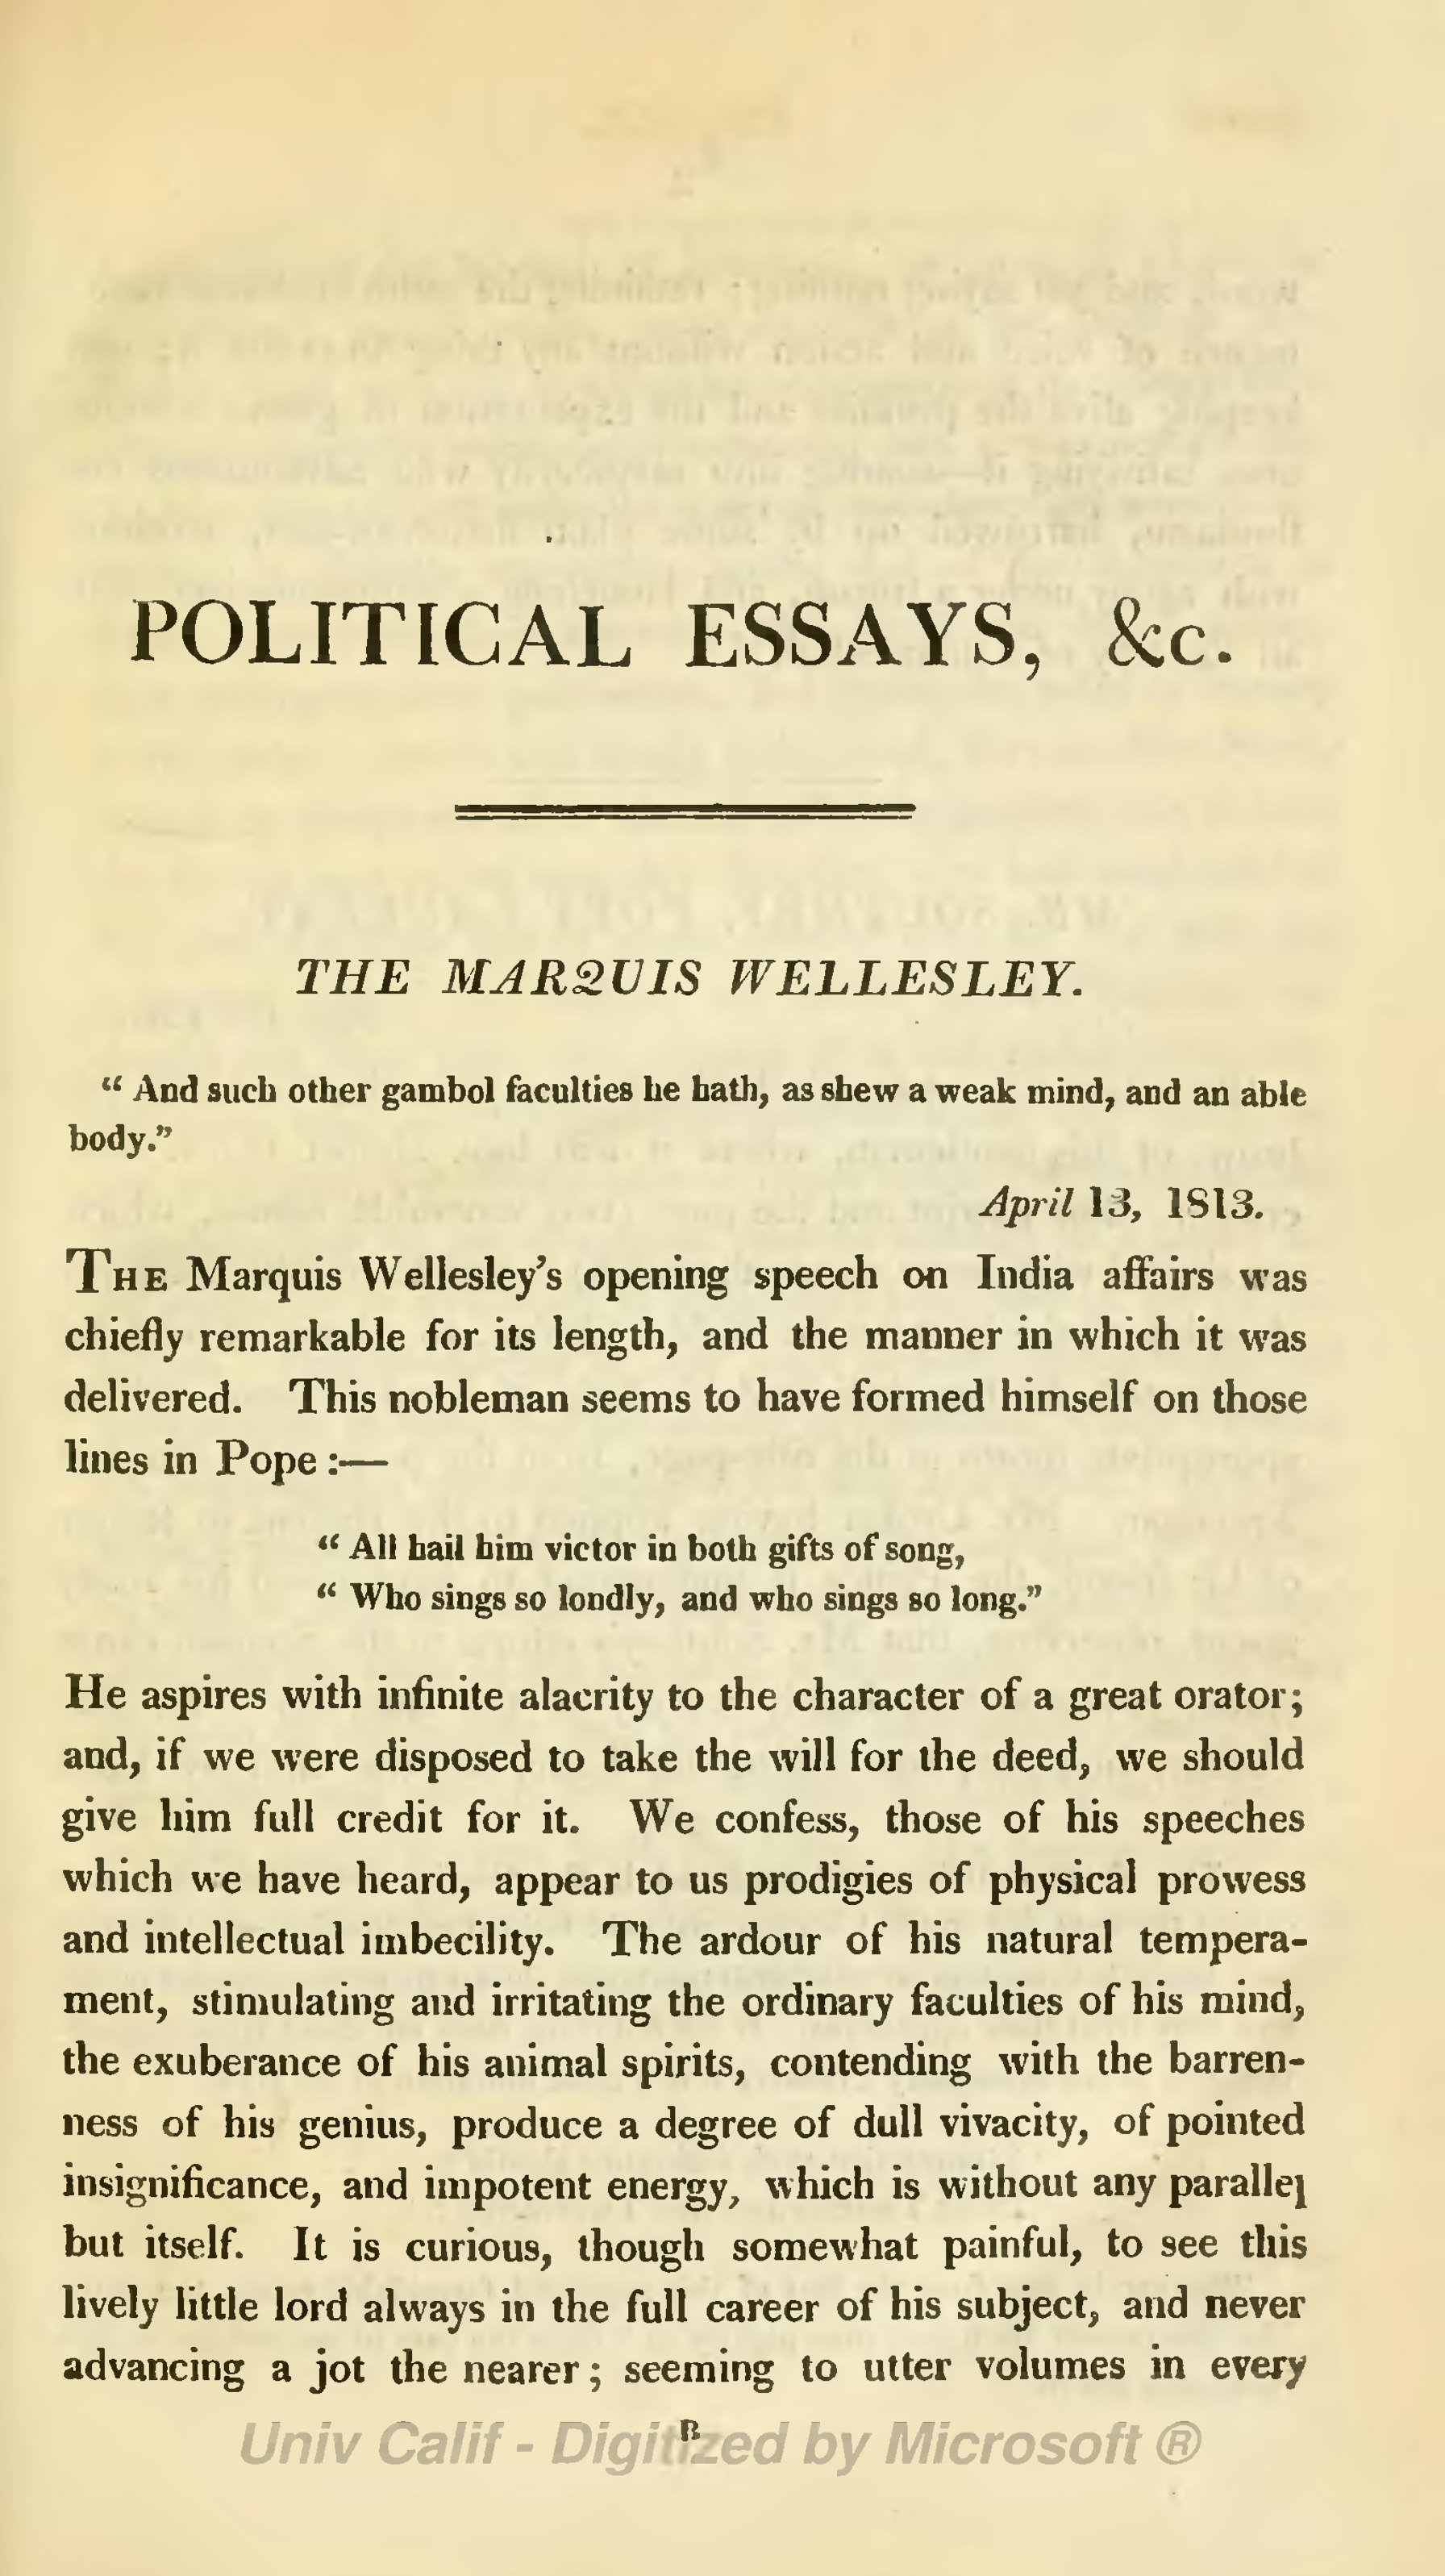 hazlitt - political essays Hazlitt, william, 1778-1830: political essays : with sketches of public characters twenty-two essays of william hazlitt, (boston, new york, d c heath.